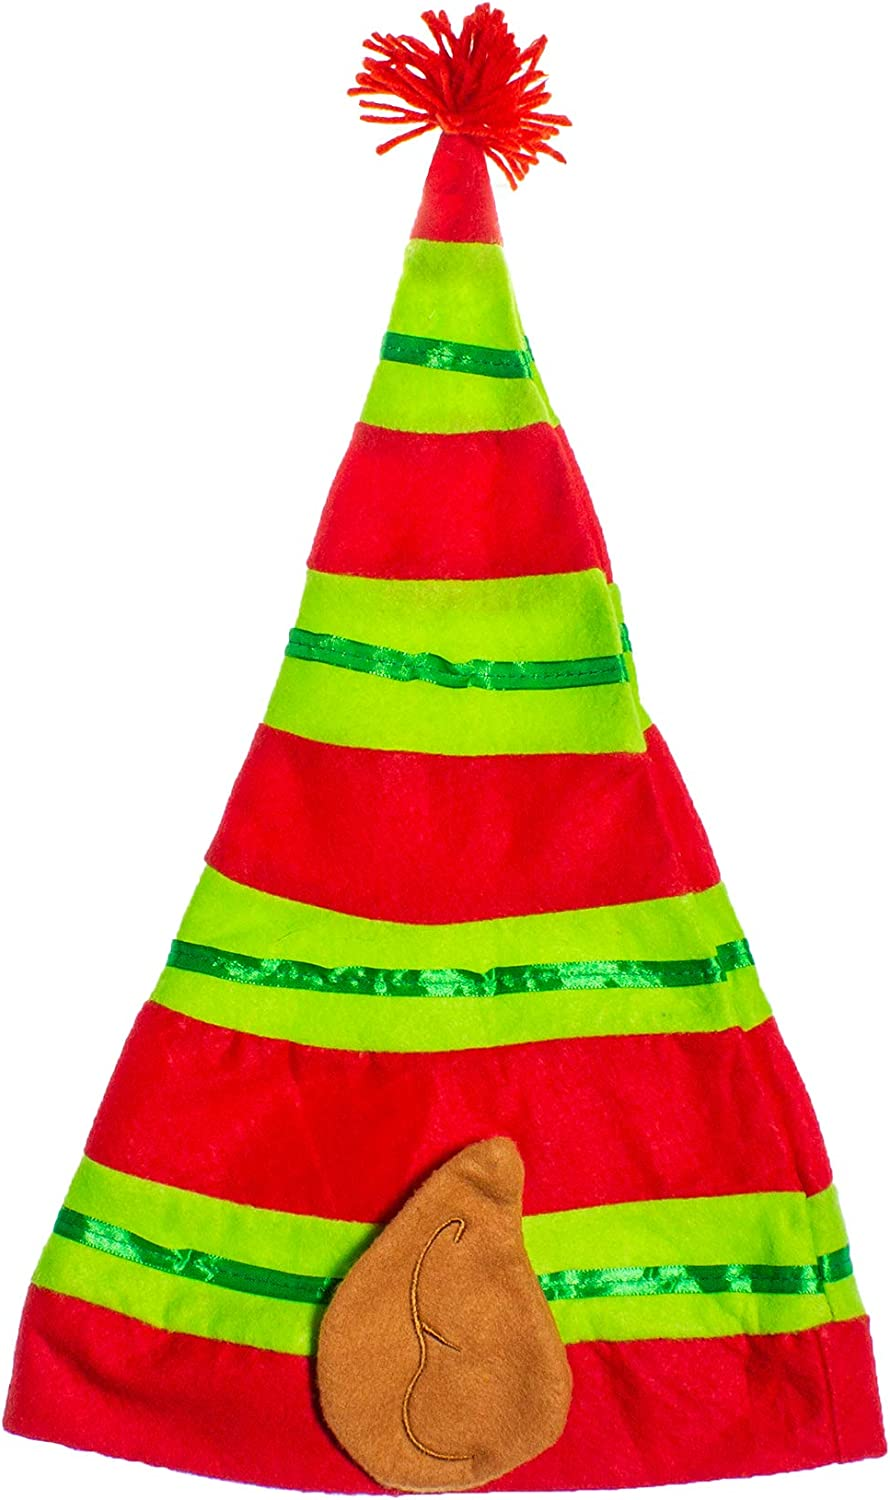 Windy City Novelties Festive Christmas Hat Stripped Ear Elf with Year-end annual account Cheap SALE Start